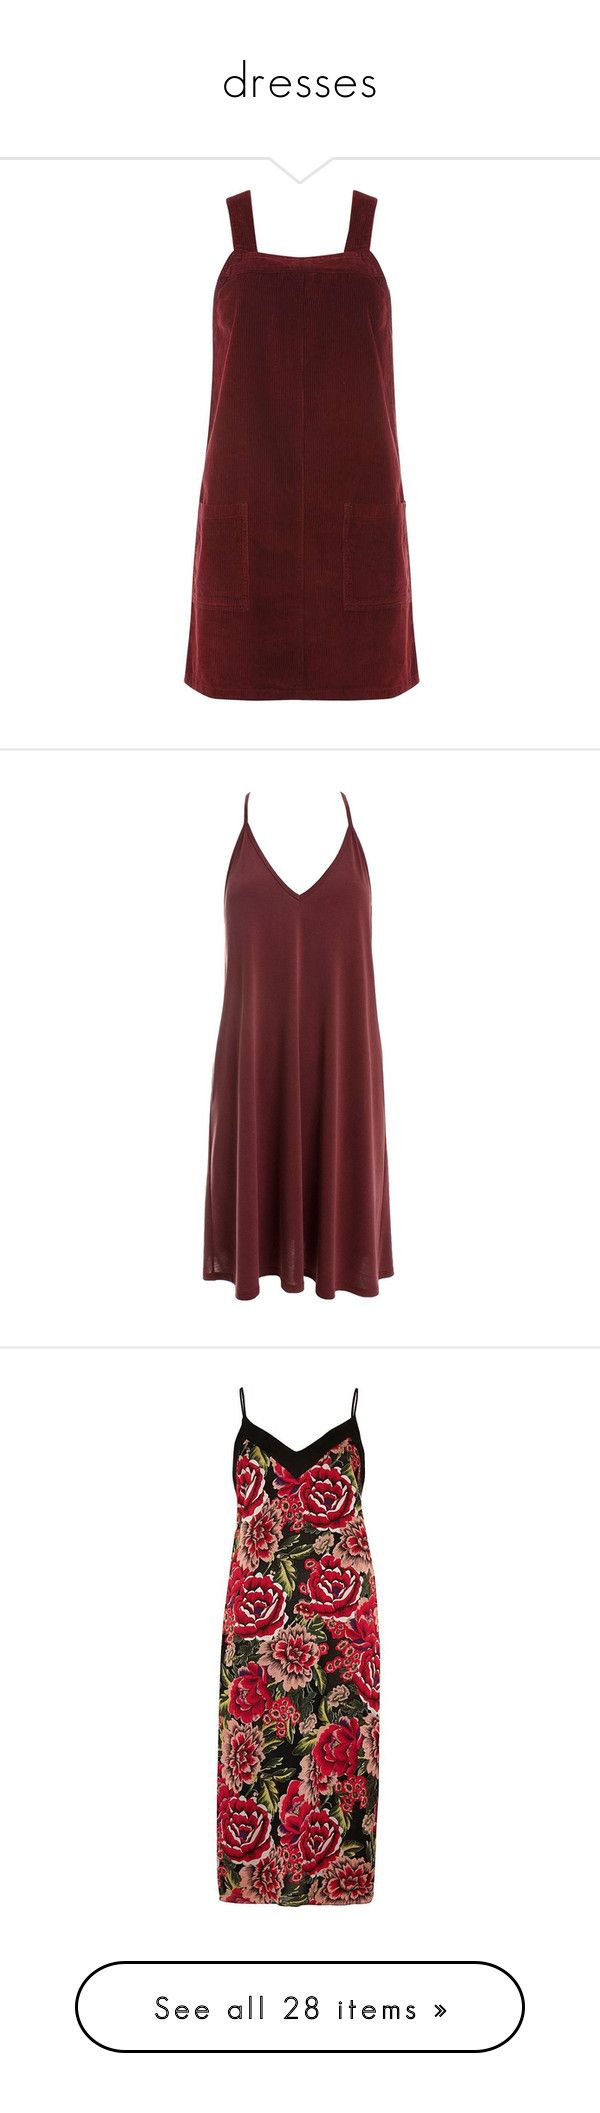 """""""dresses"""" by harthkai on Polyvore featuring dresses, red, pinafore dress, red dress, burgundy red dress, red pinafore dress, pinny dress, vestidos, burgundy and racer back dress"""